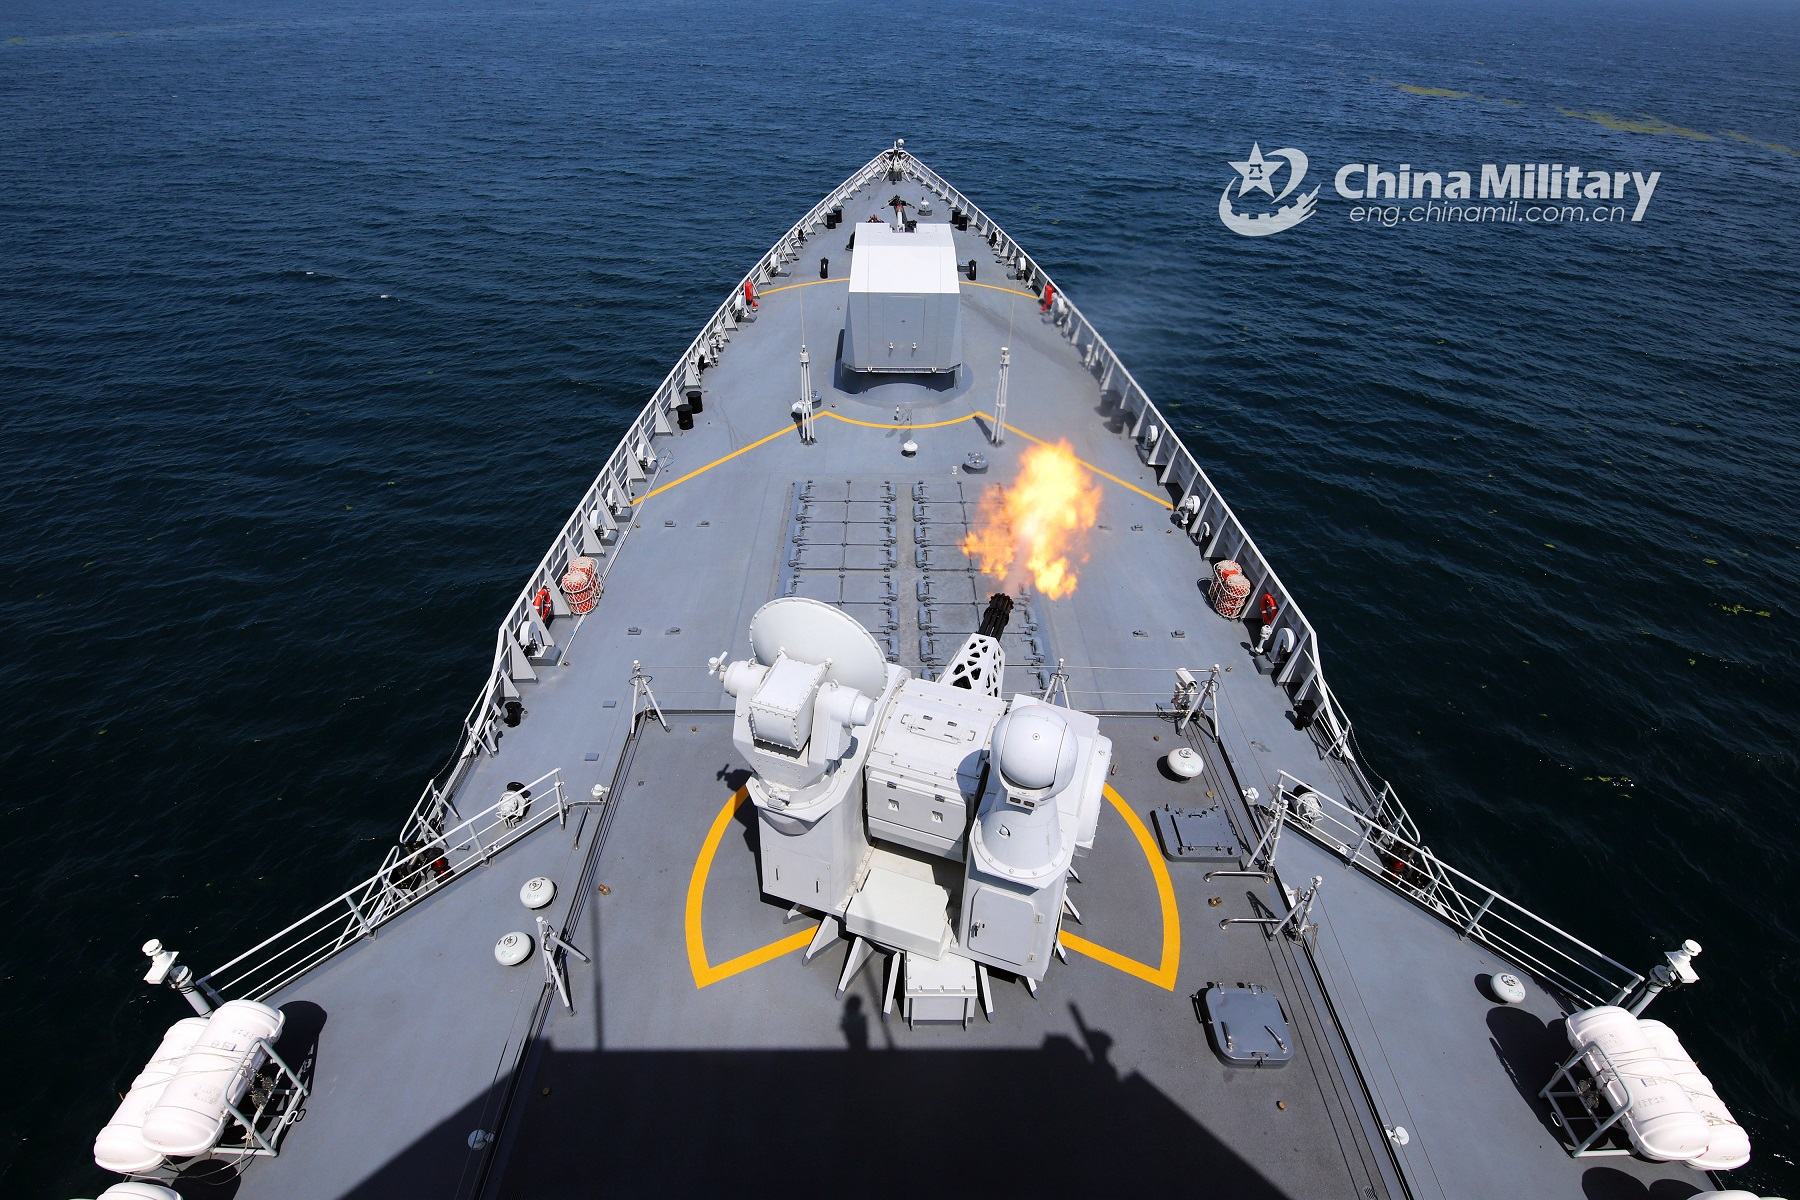 Chinese PLAN New Guided-Missile Destroyer Qiqihar Tests It's Close-in Weapons System